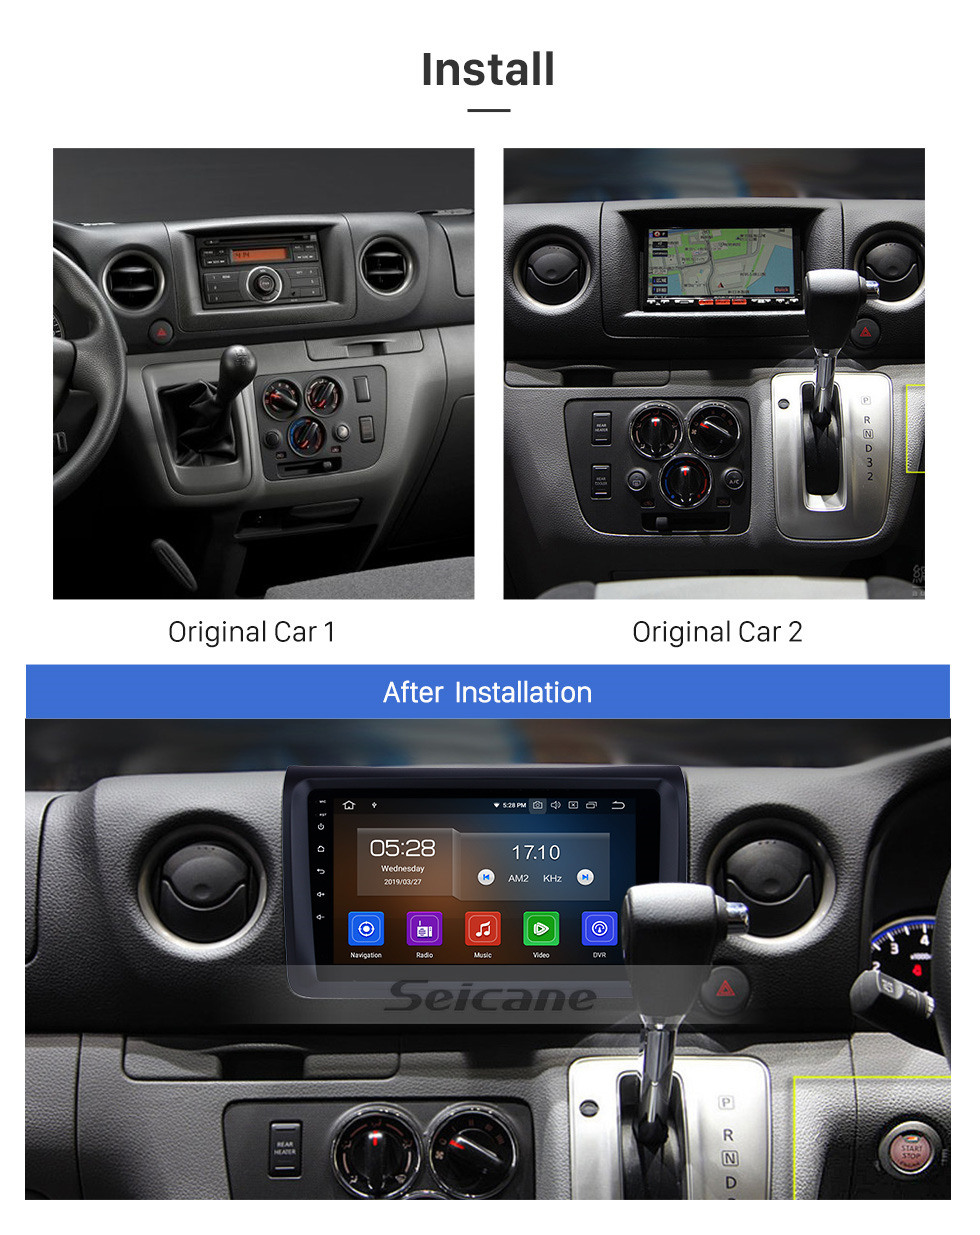 "Seicane HD Touchscreen 9"" Aftermarket Android 10.0 Car Stereo GPS Navi Head unit for NISSAN NV350 with Bluetooth music Wifi USB support DVD Player Carplay OBD Steering Wheel Control Digital TV"